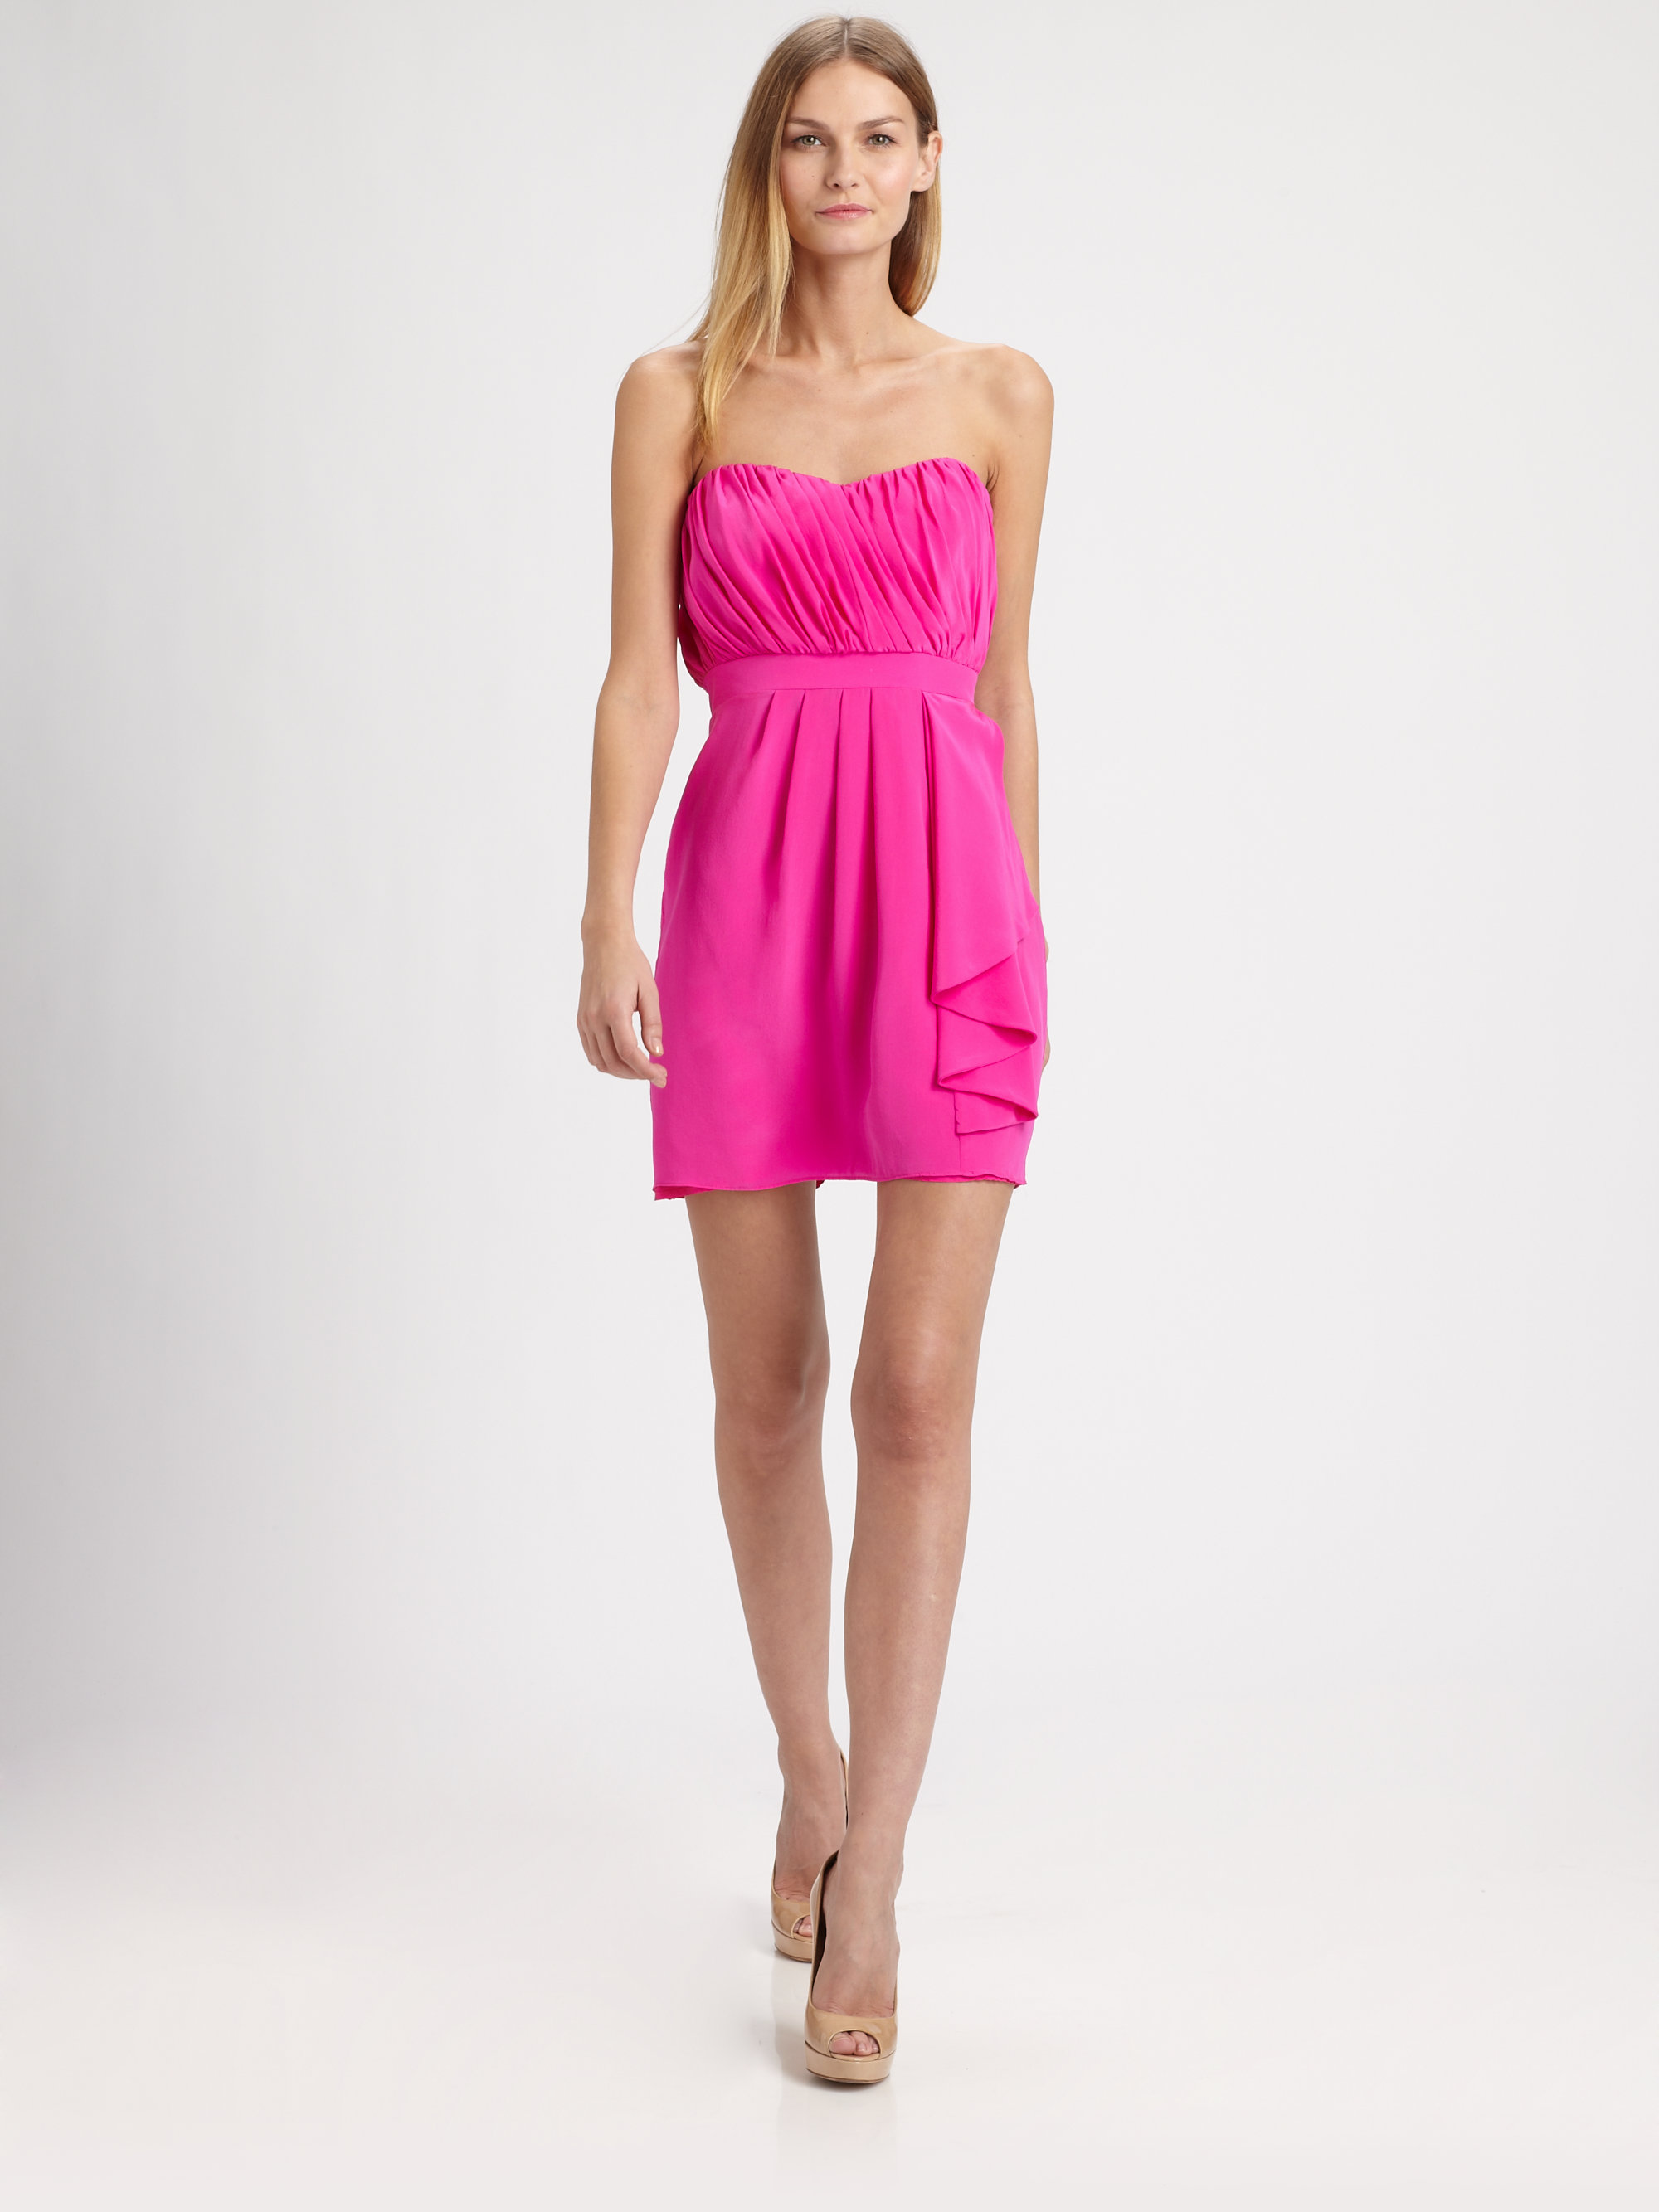 907390835392 Lyst - Shoshanna Silk Courtney Dress in Pink